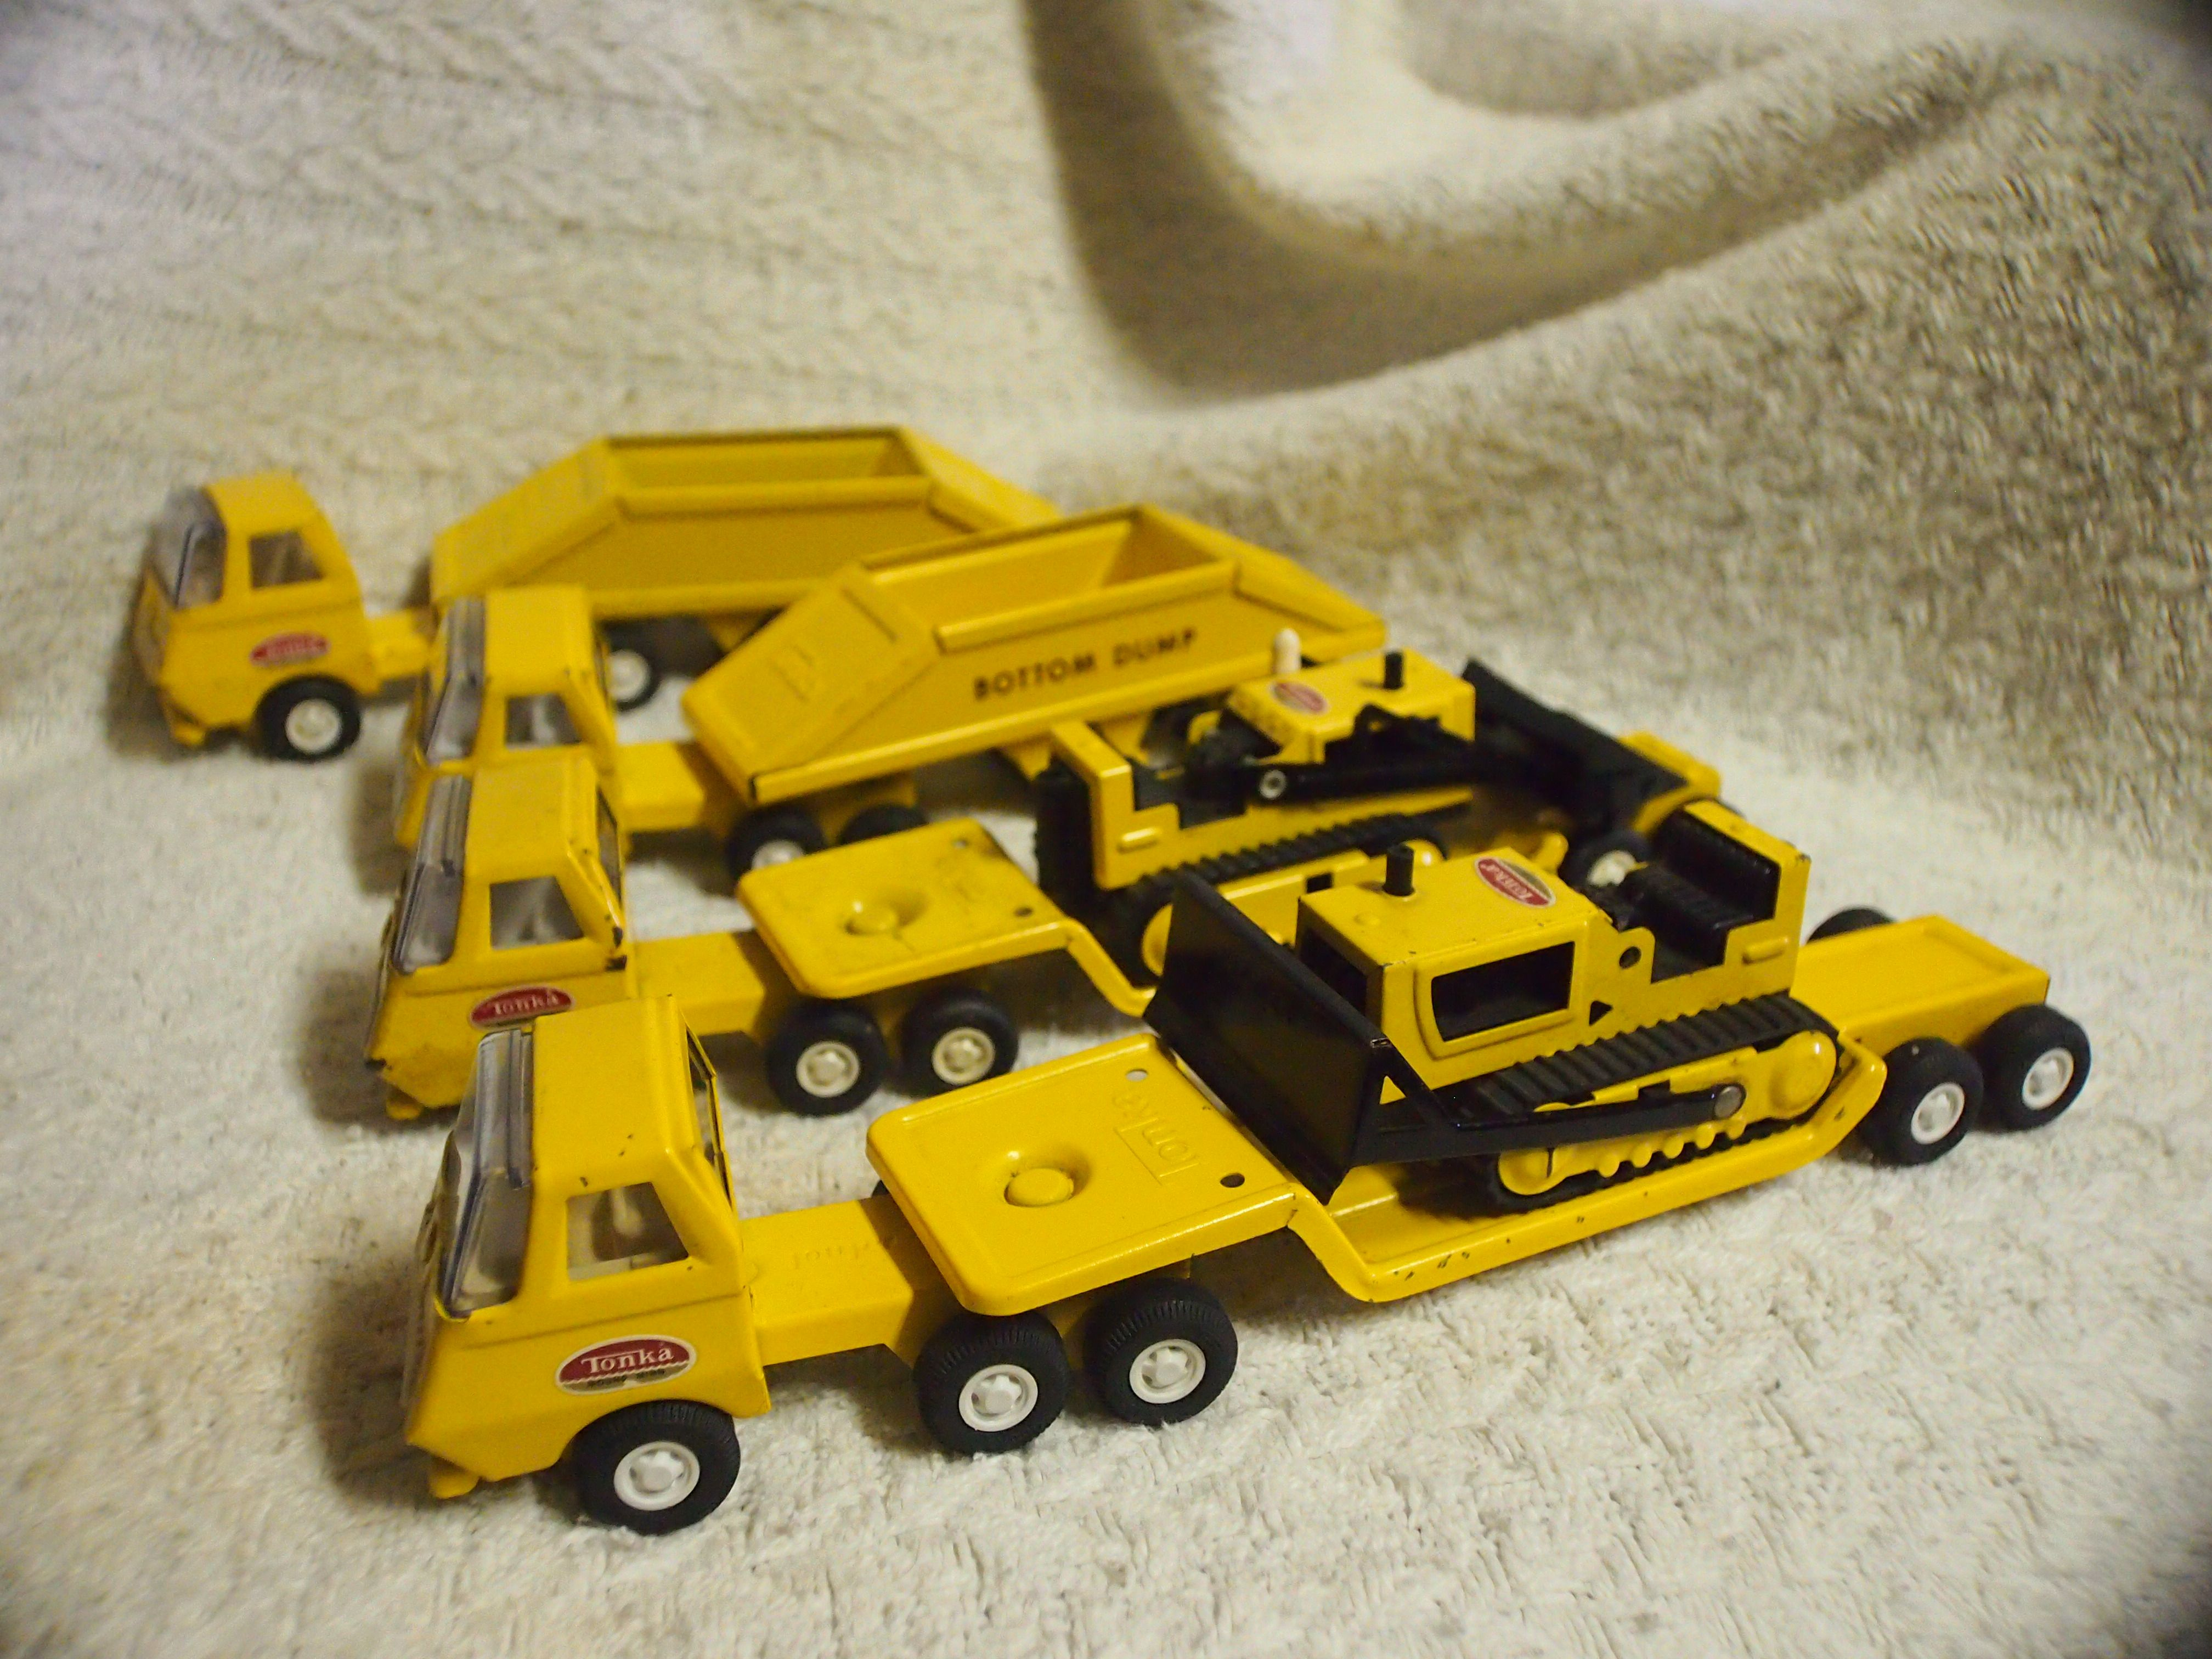 Tonka Construction Toys For Boys : Tonka tiny construction trucks toys